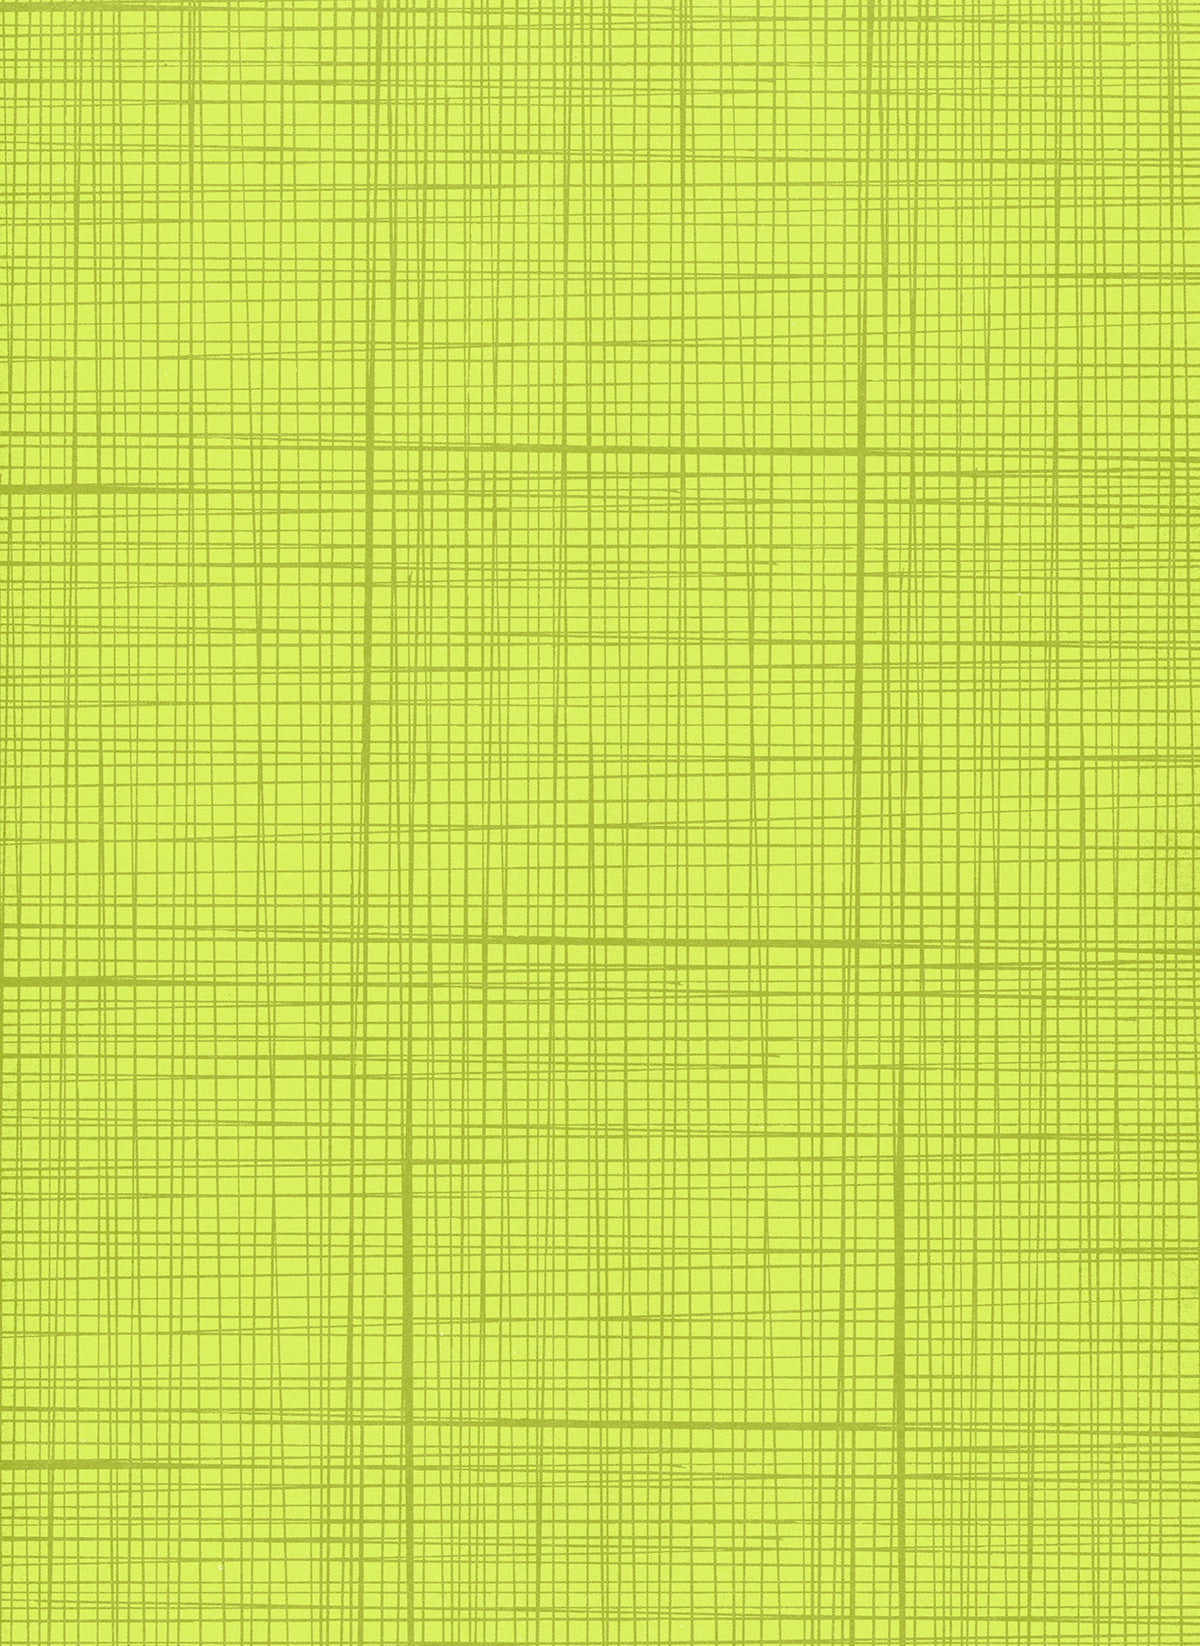 Scratches in Chartreuse Printed Photography Background / 9860 - DropPlace